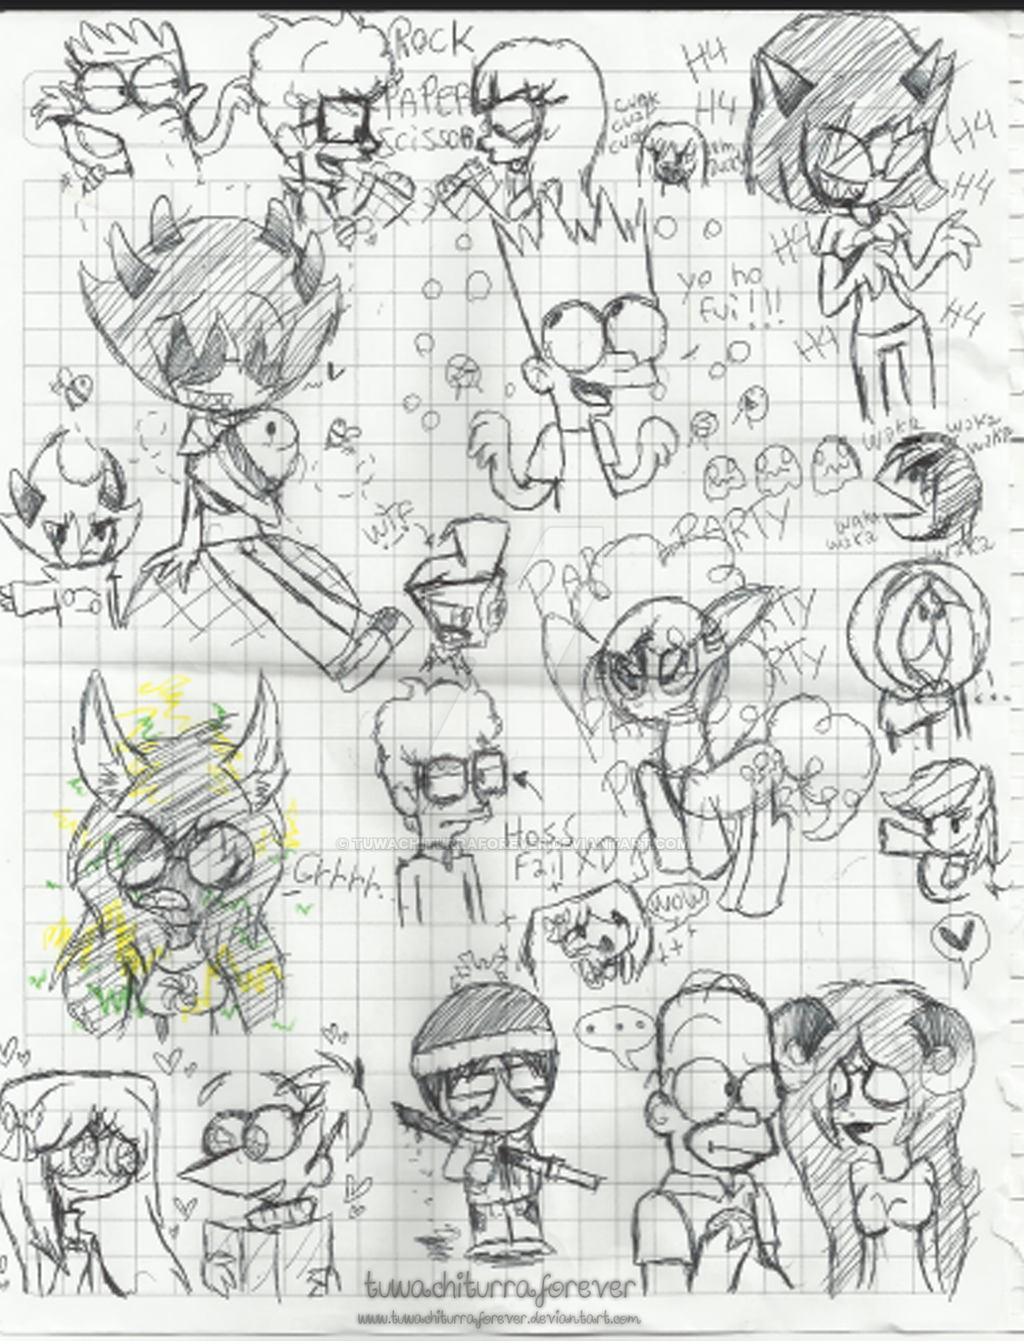 .:Sketchs In The School 1:. by tuwachiturraforever